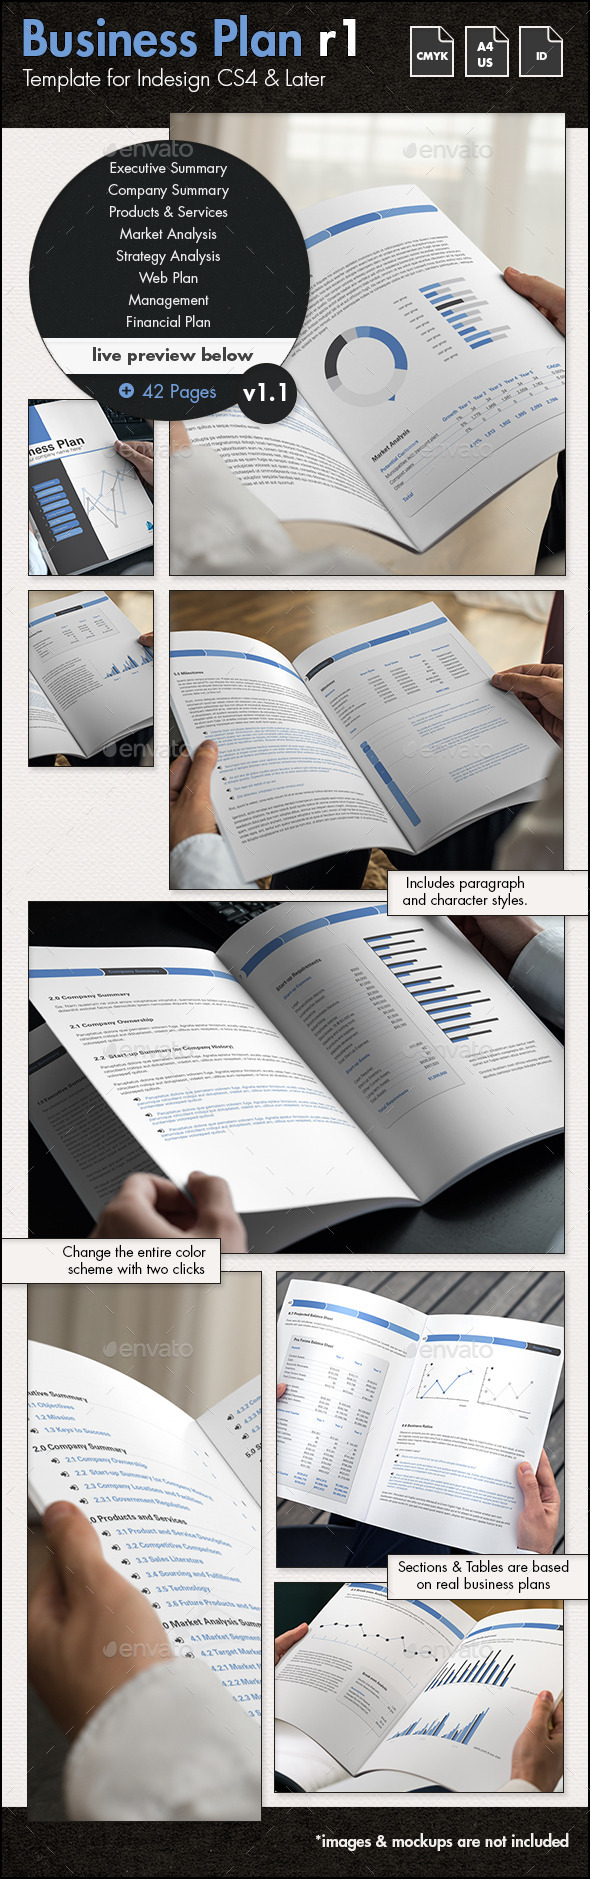 42 pages business plan template by sthalassinos graphicriver 42 pages business plan template cheaphphosting Image collections